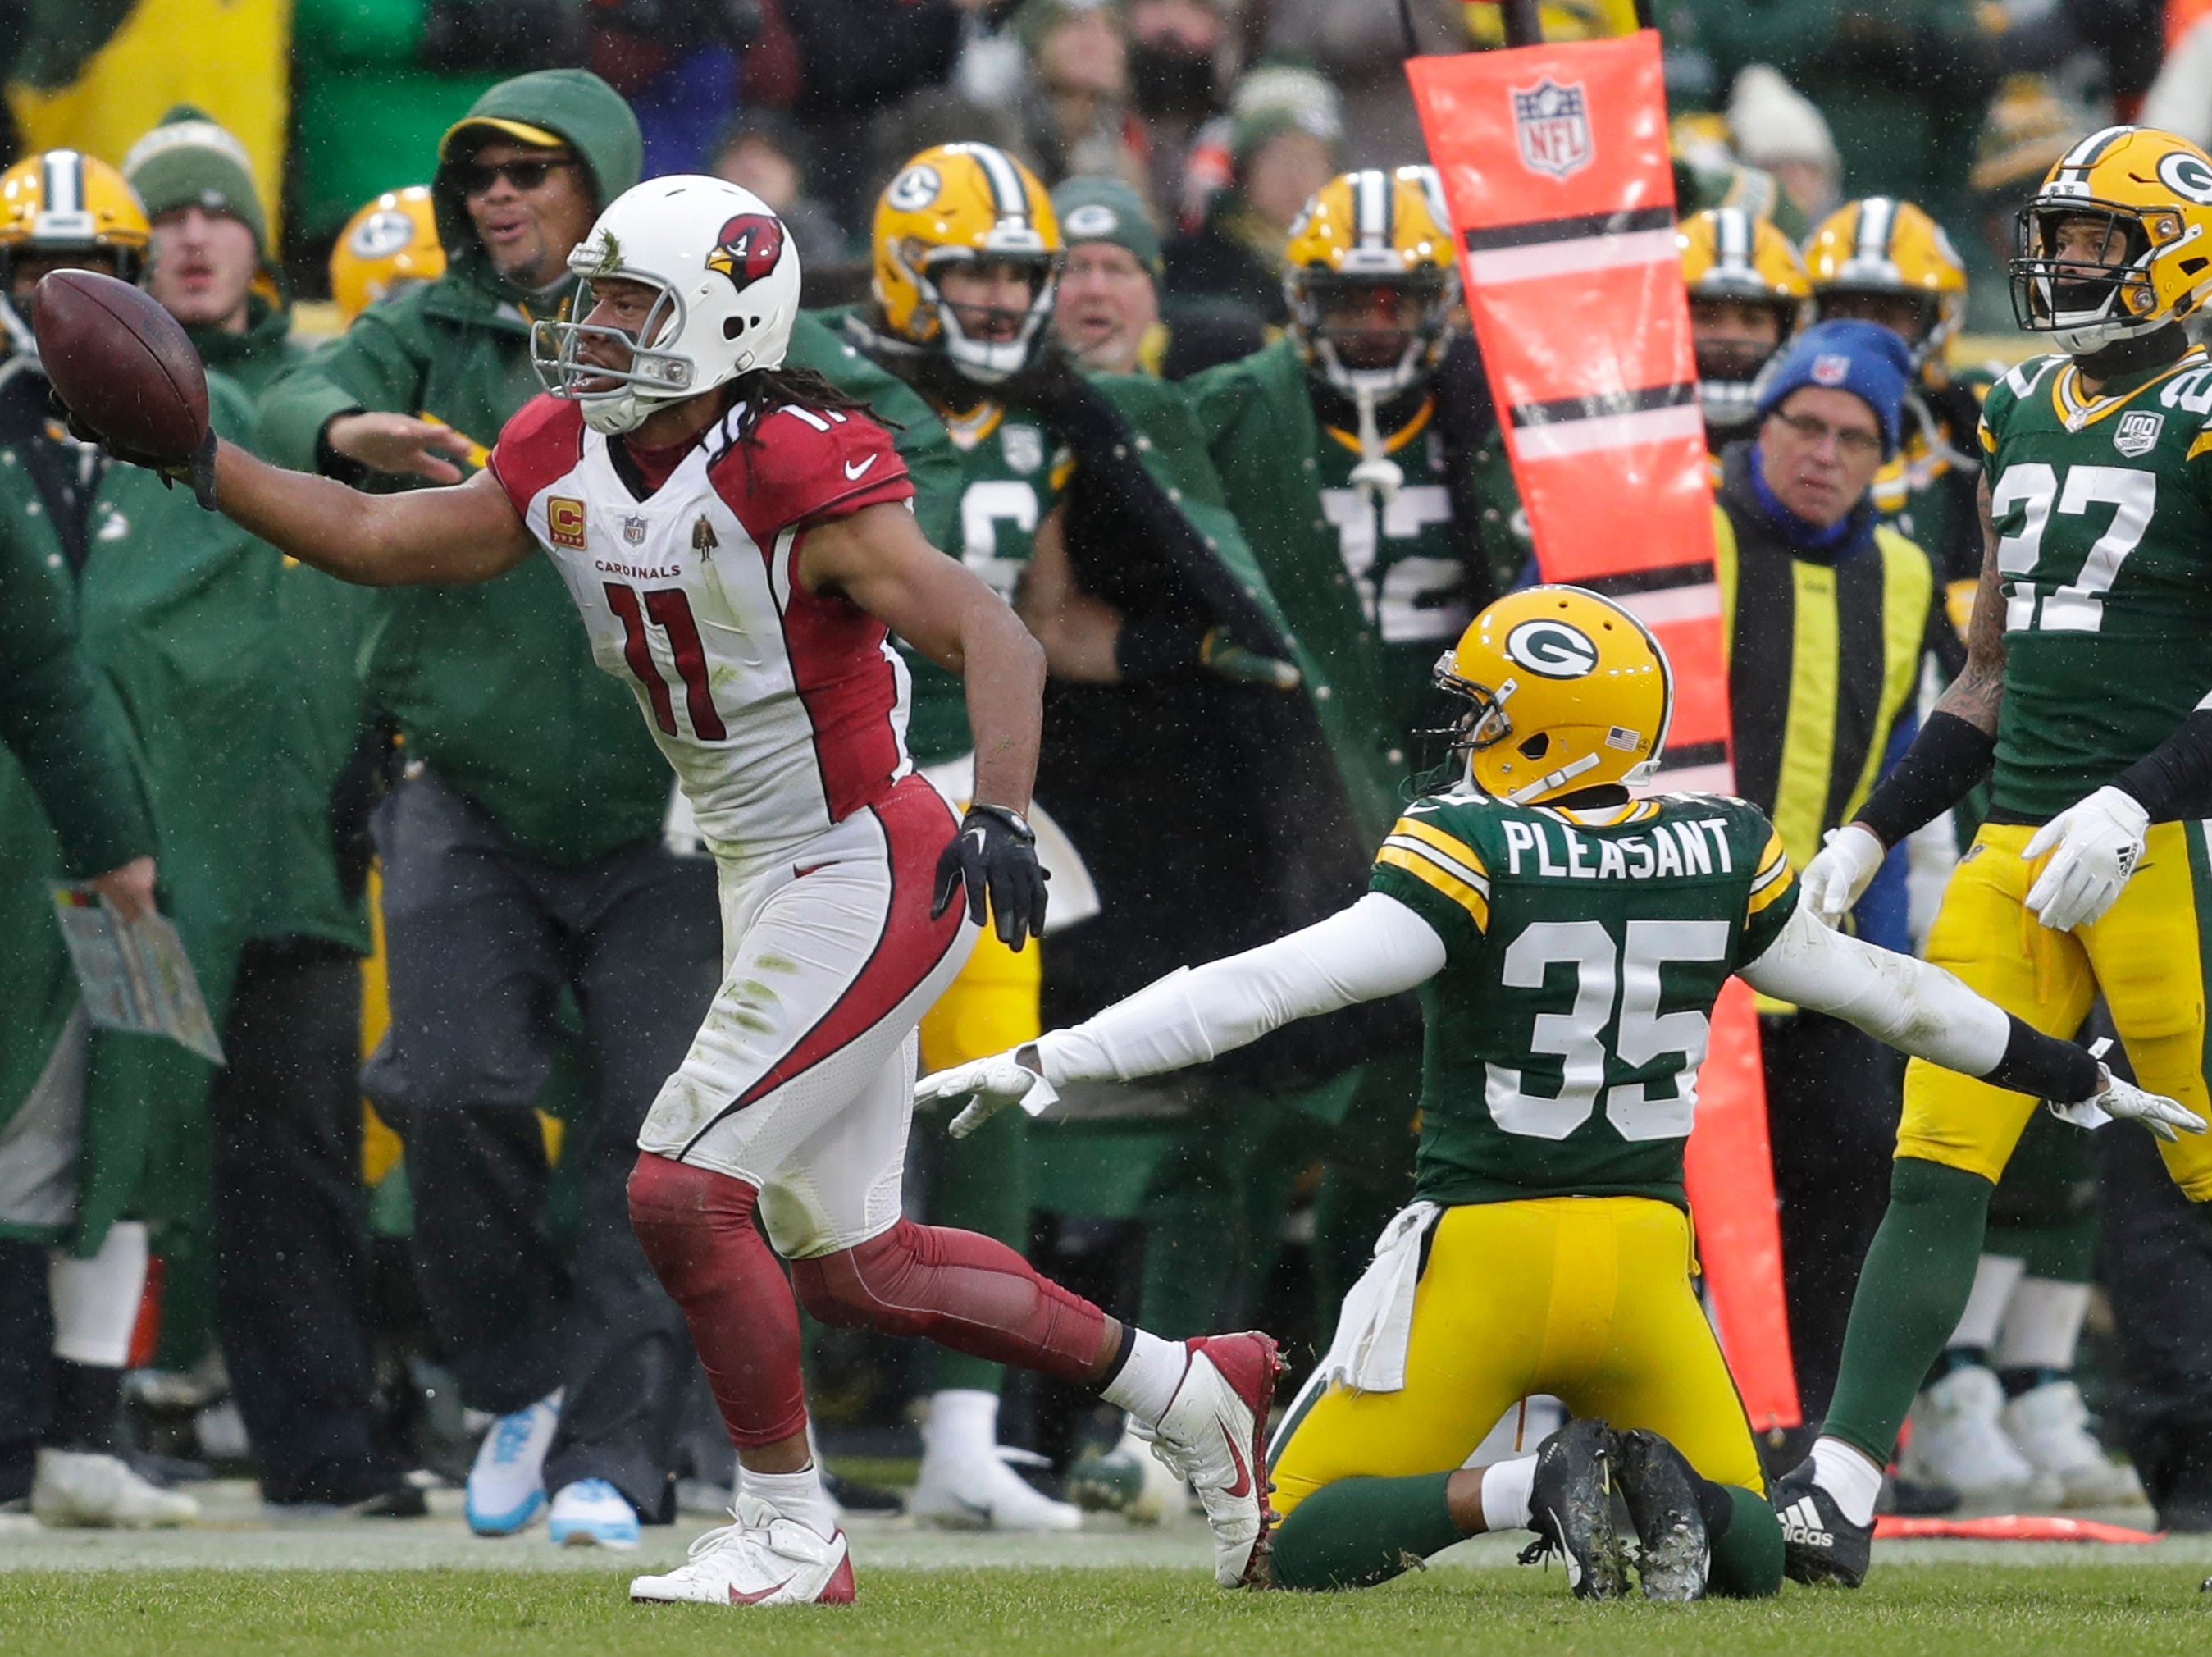 Arizona Cardinals wide receiver Larry Fitzgerald (11) celebrates a long receptiion in the fourth quarter against Green Bay Packers defensive back Eddie Pleasant (35) and cornerback Josh Jackson (37) Sunday, December 2, 2018, at Lambeau Field in Green Bay, Wis. 